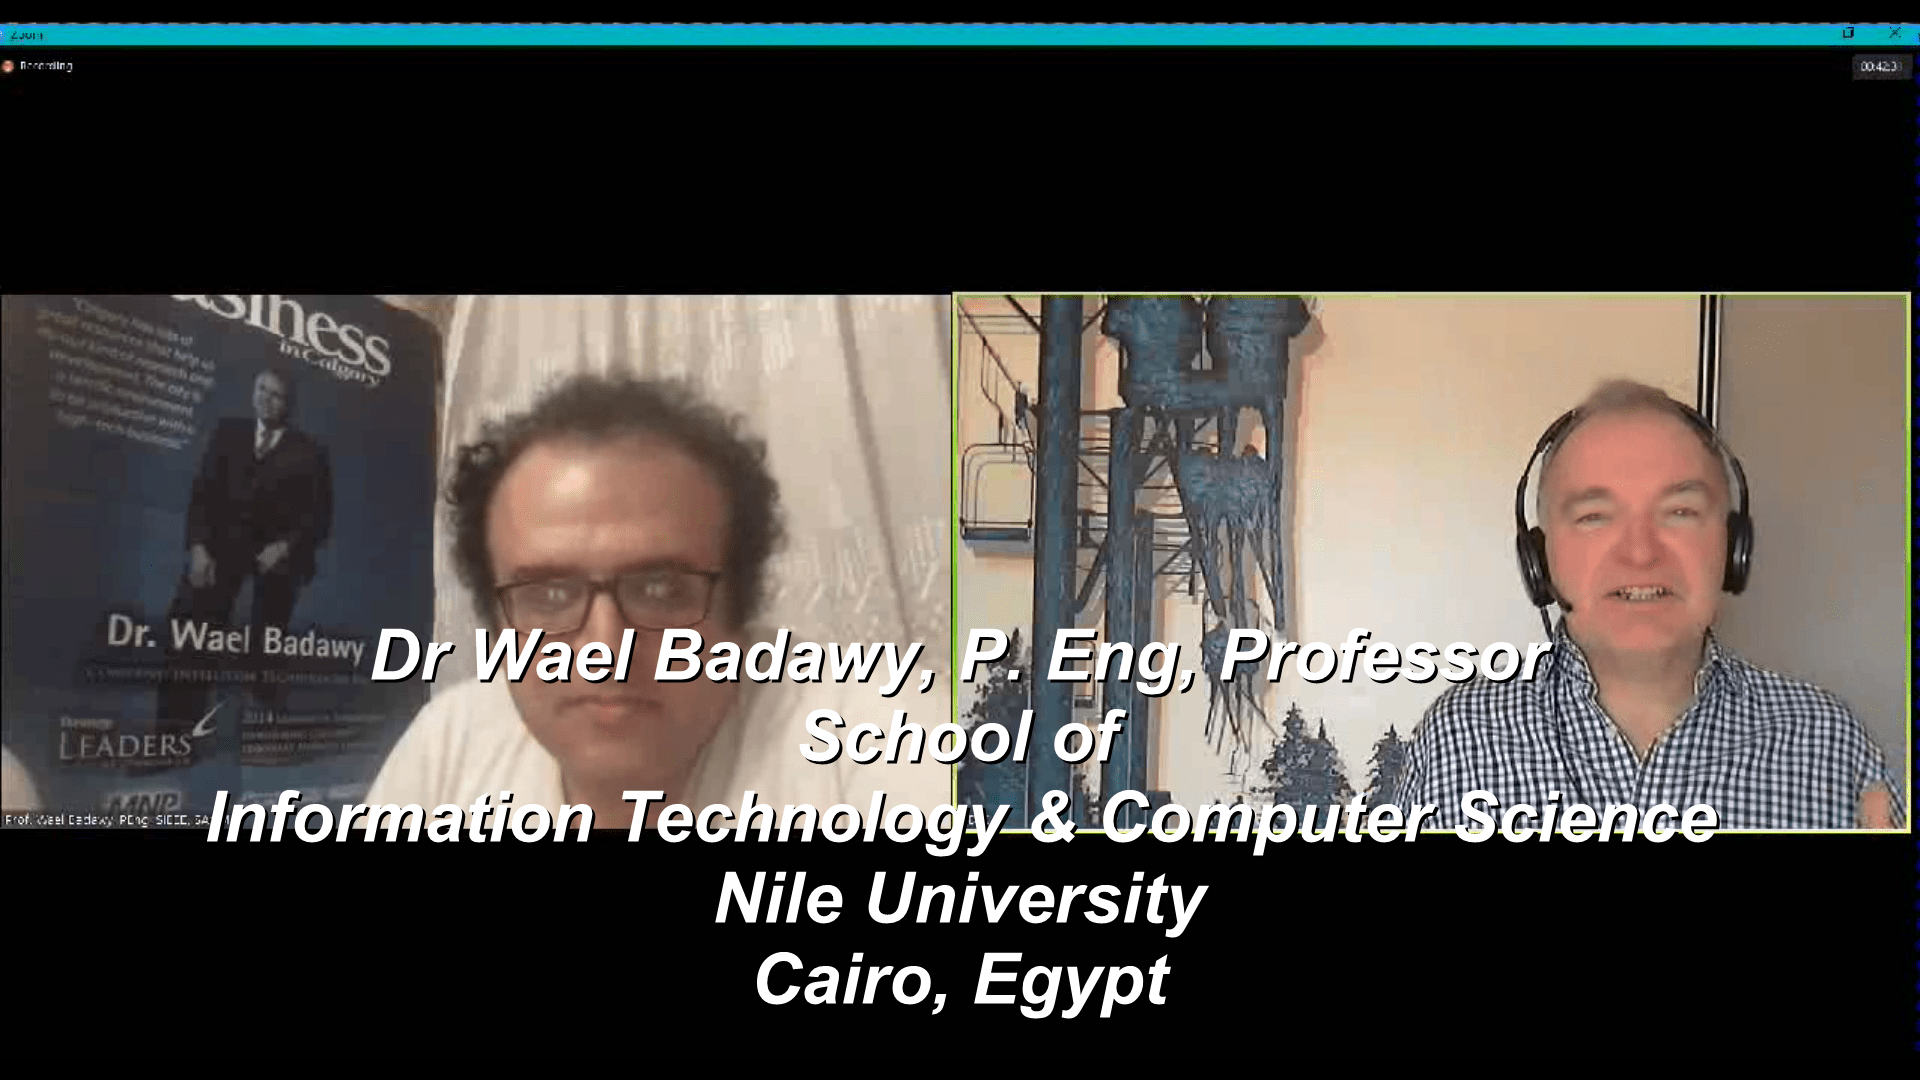 Out-of-Country interviews Dr Wael Badawy while he is a professor at Nile University Cairo Egypt